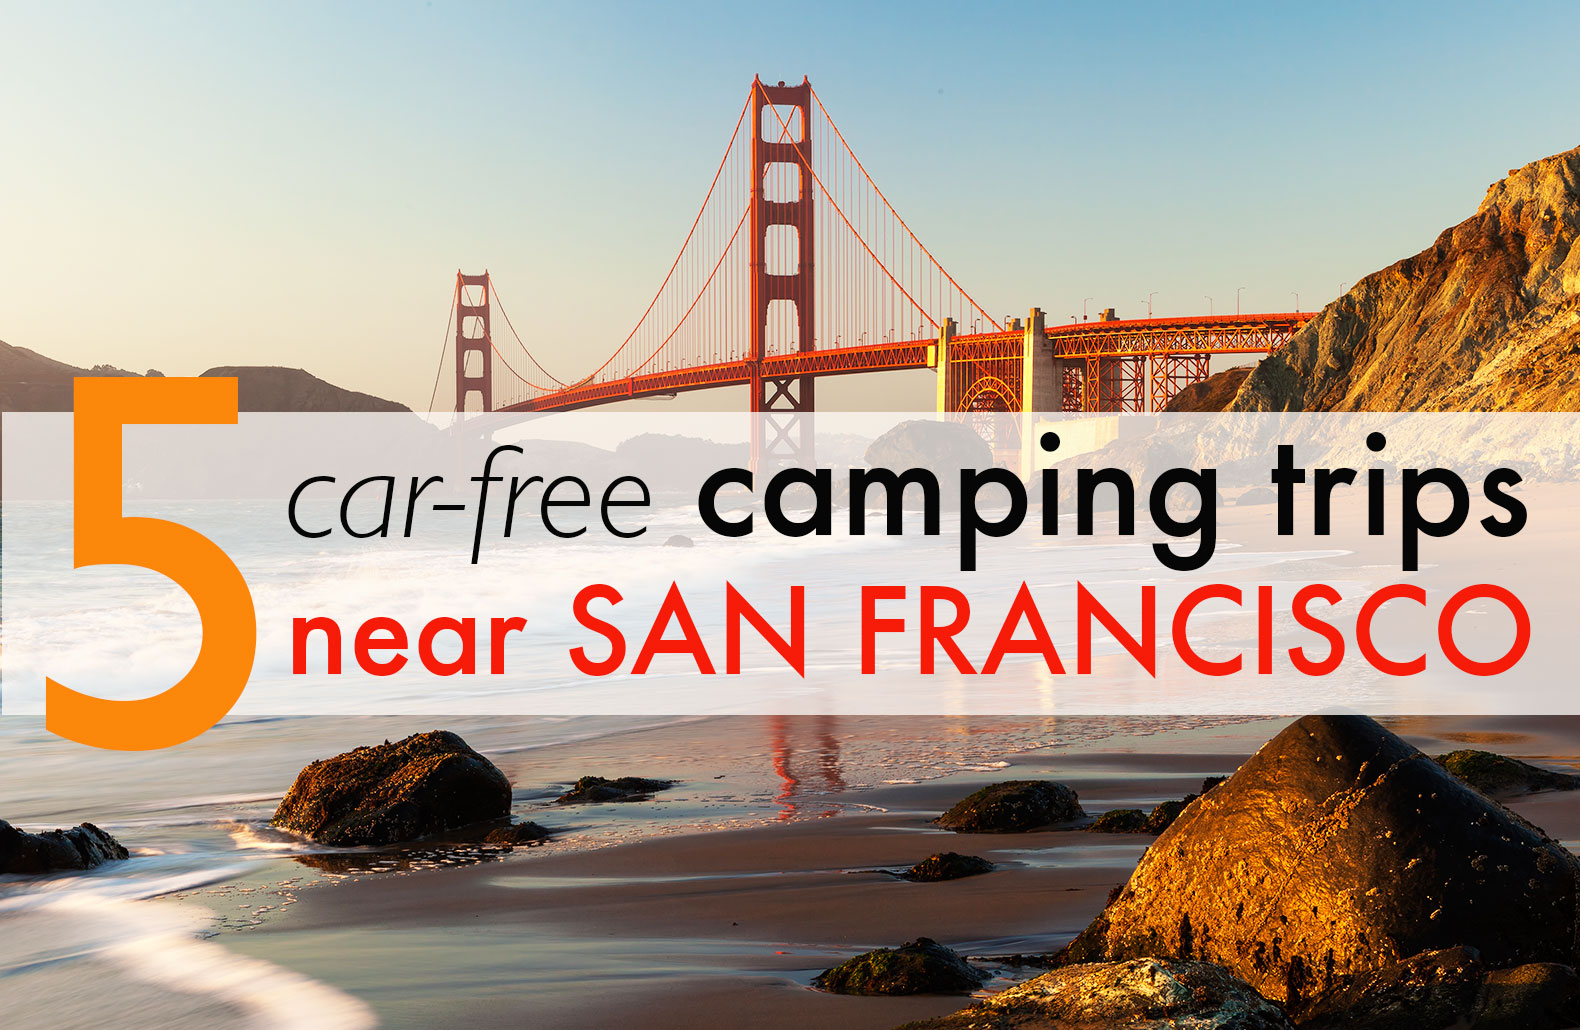 5 Spectacular car-free camping trips around the San Francisco Bay Area